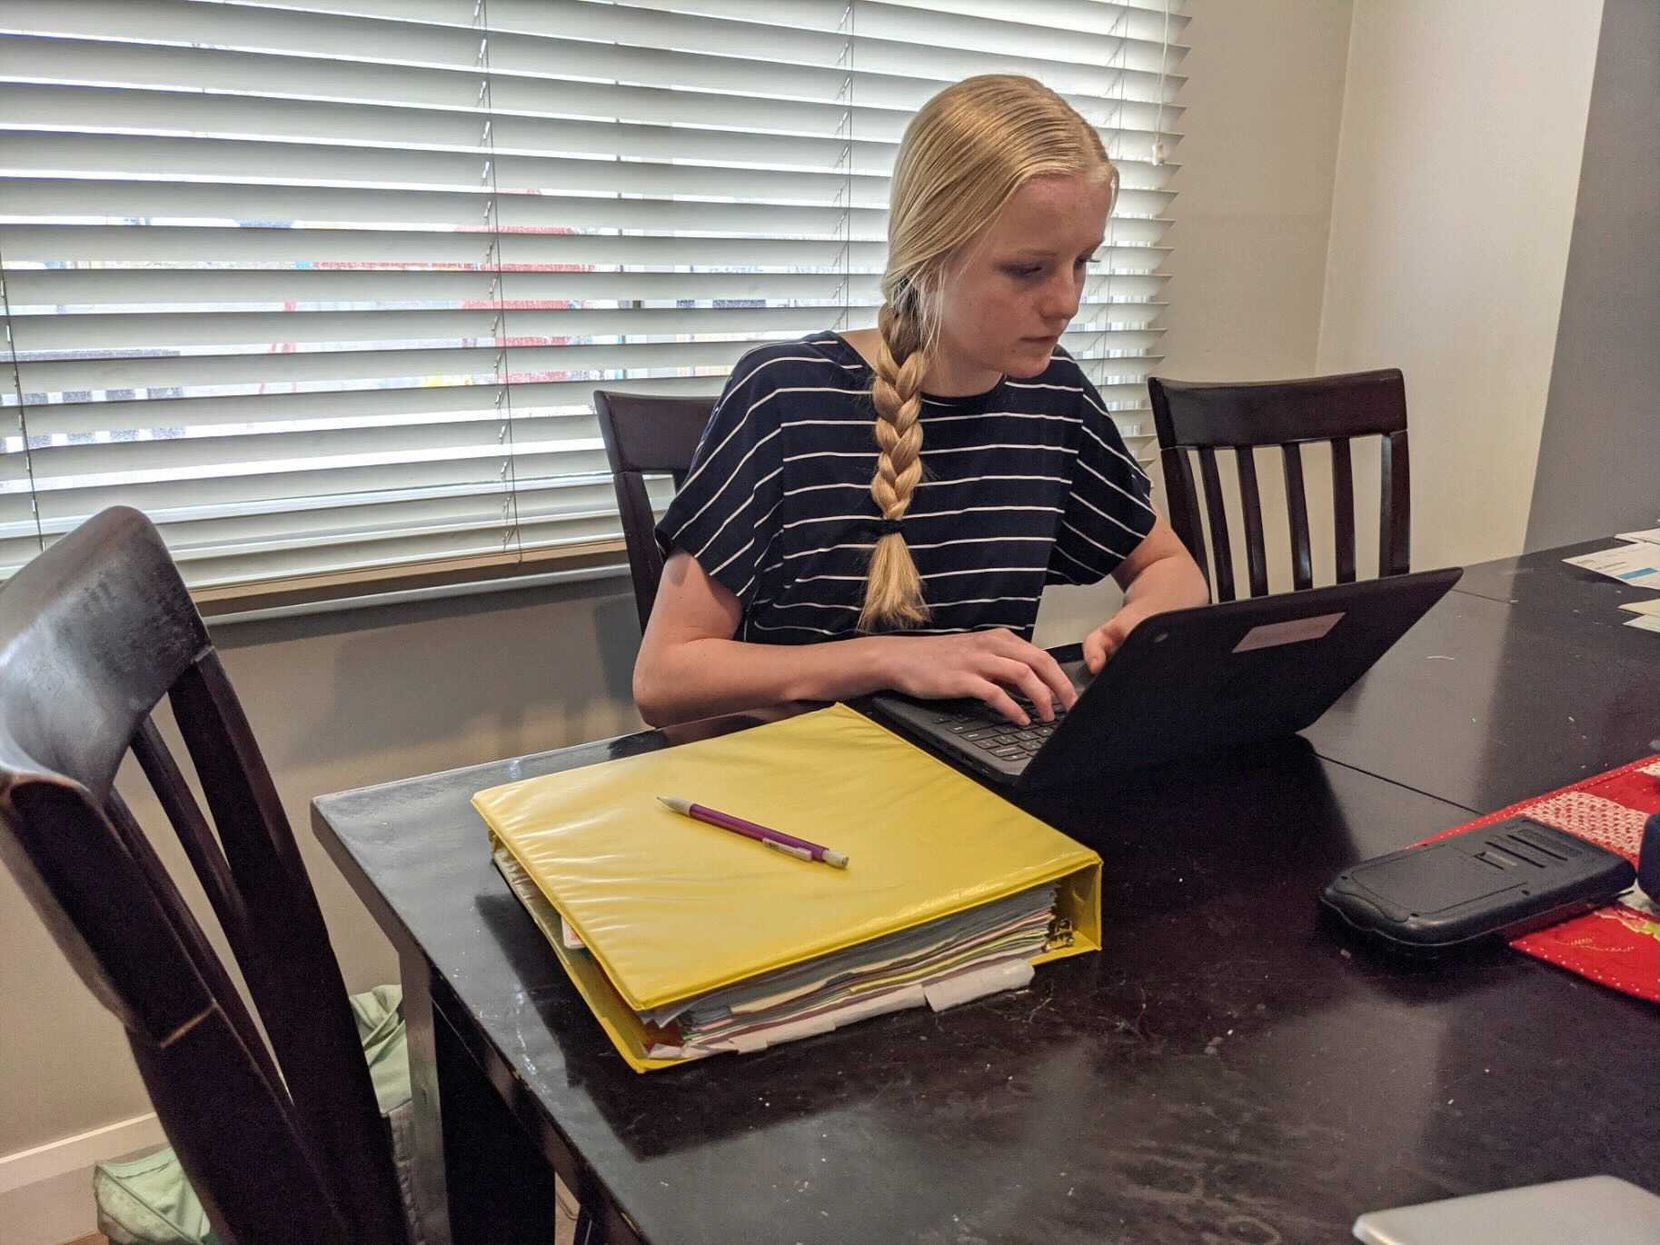 "Ninth grader Kate Bowen completes homework in her family's dining room with the help of Murray City School District's broadband network. The Utah district hopes to expand access to all 6,000 students by mid-April. ""This will be part of our Murray culture now,"" says Superintendent Jennifer Covington."